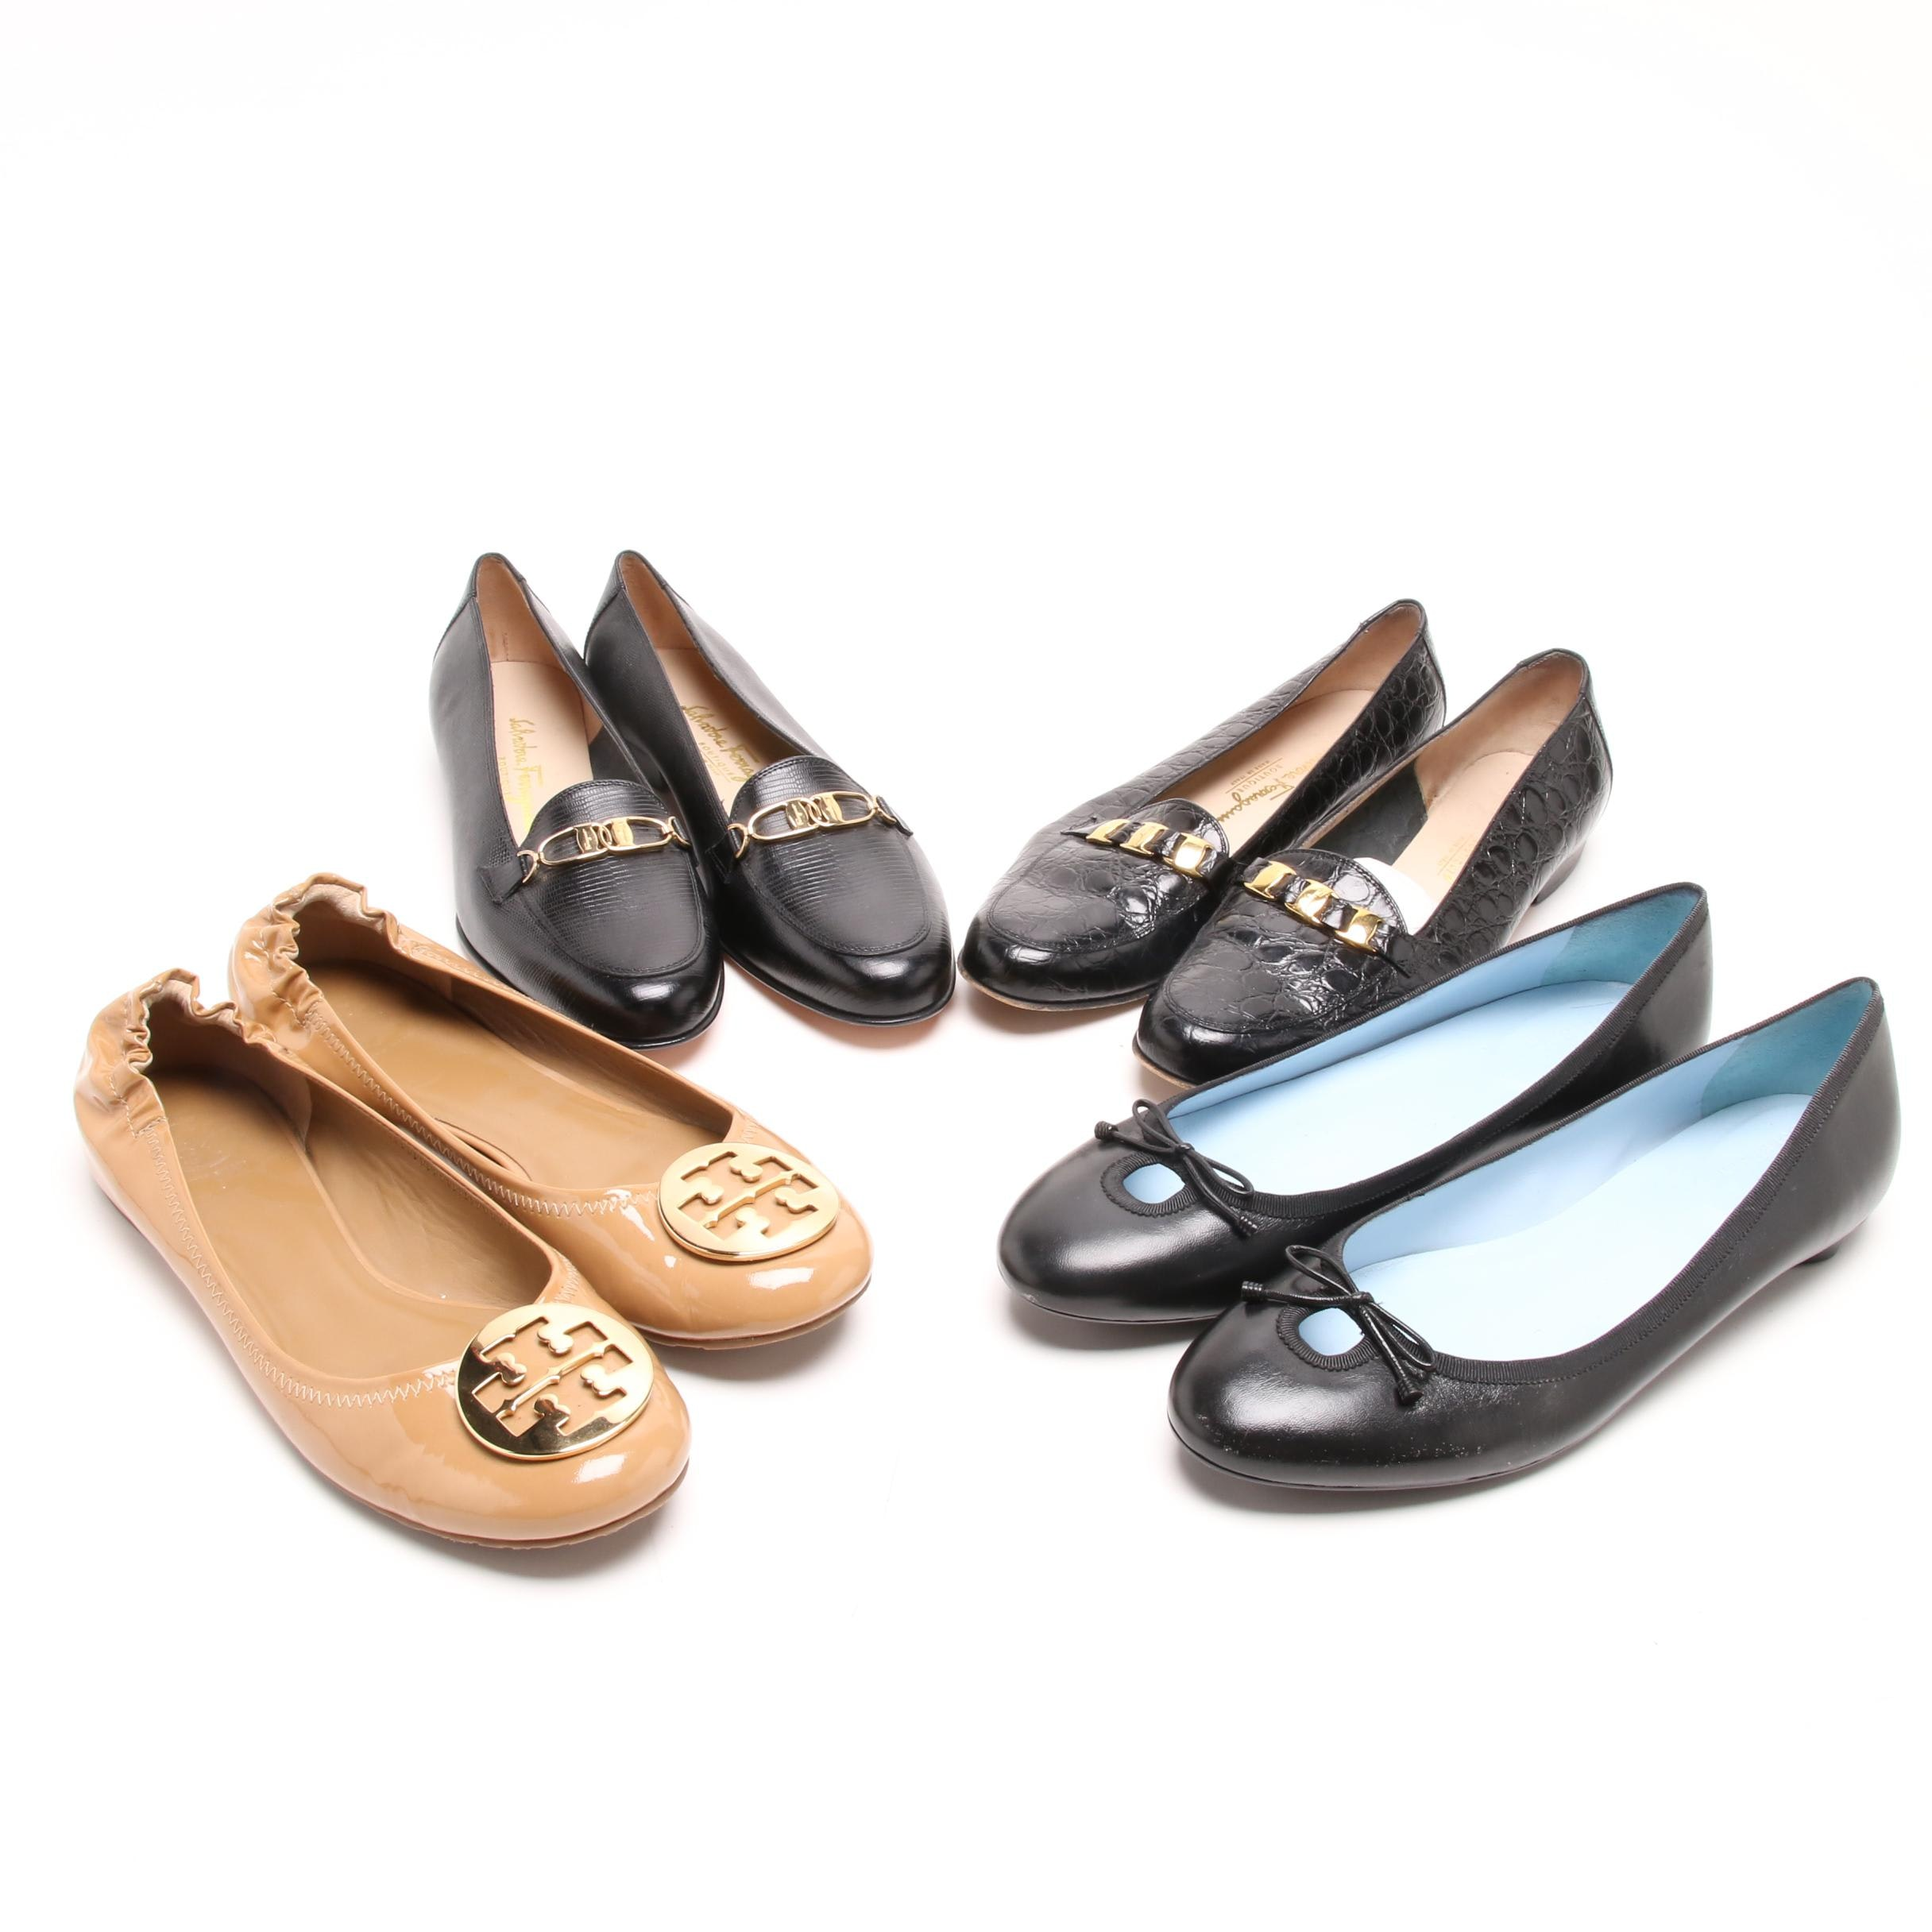 Women's Flats and Low Heel Shoes Including Salvatore Ferragamo Boutique